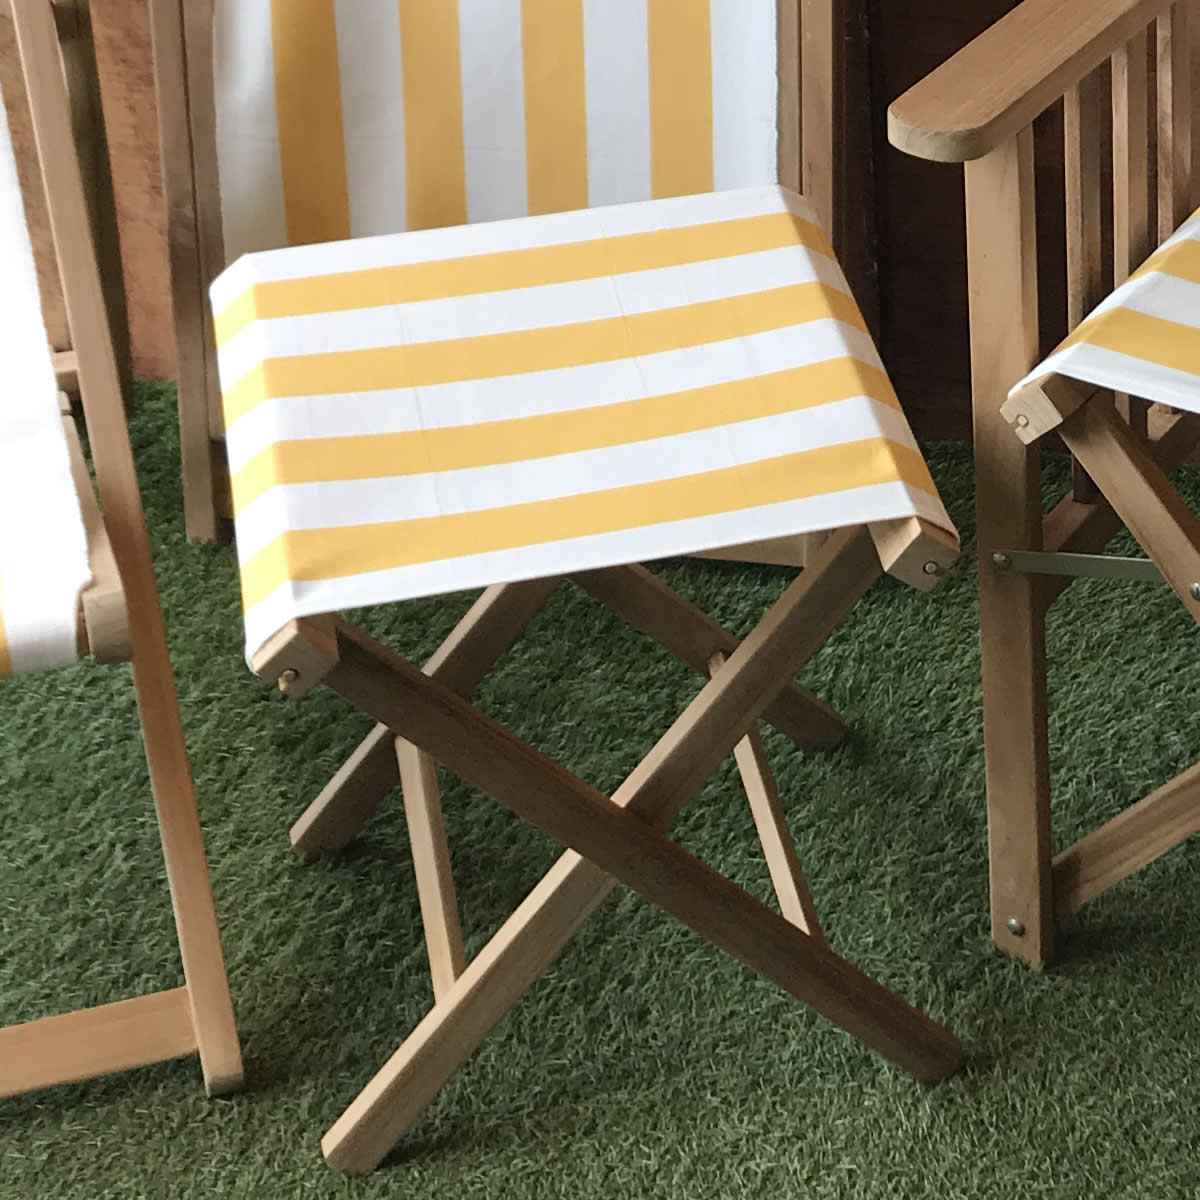 Portable Folding Stools with Striped Seats yellow, white